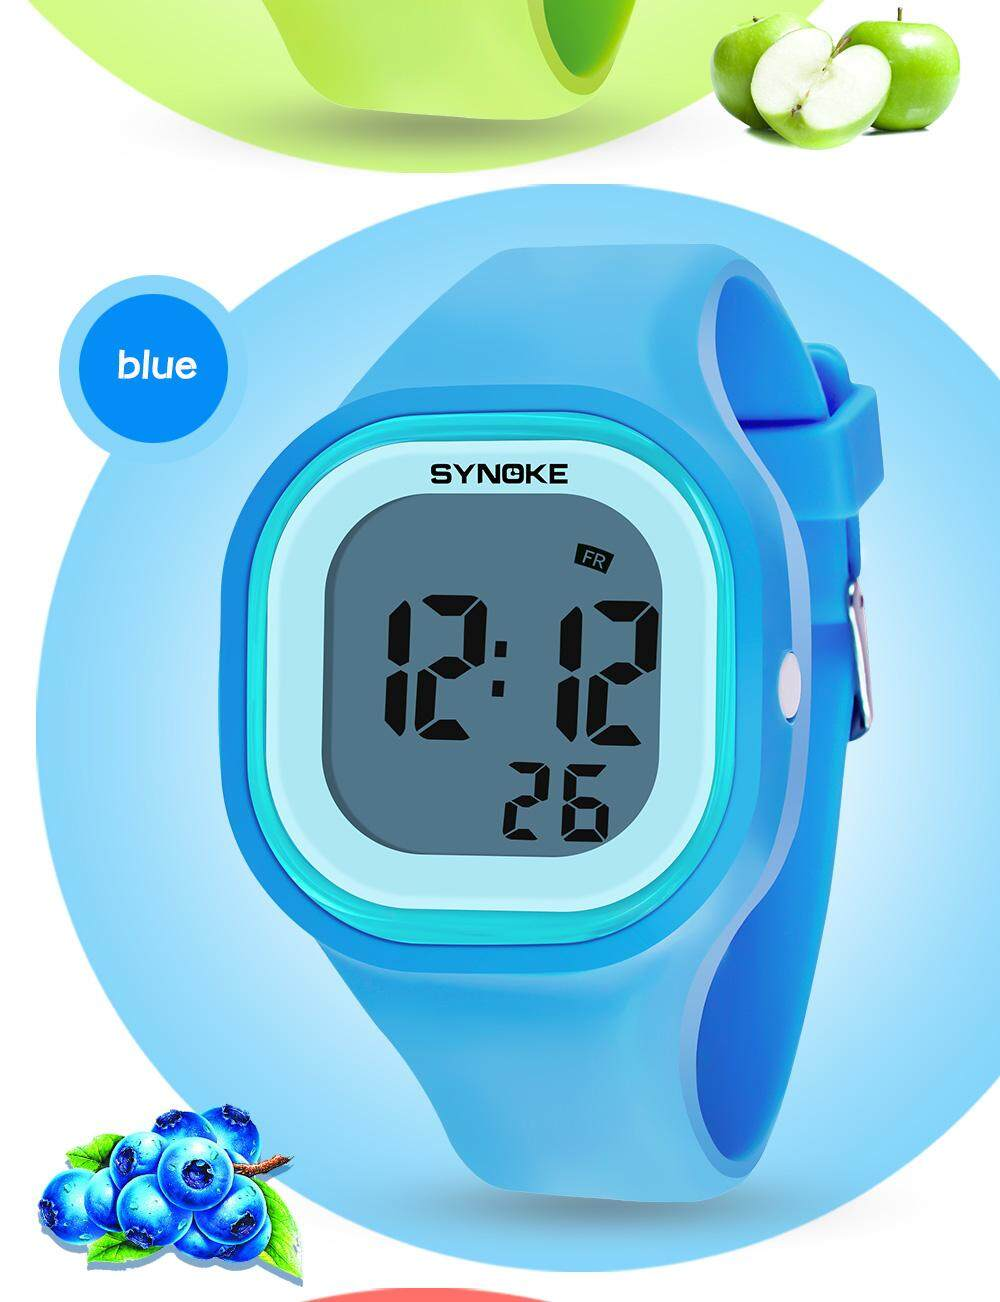 SYNOKE Brand Watch jelly multi-function removable colorful luminous 30 meters waterproof silicone led Digital